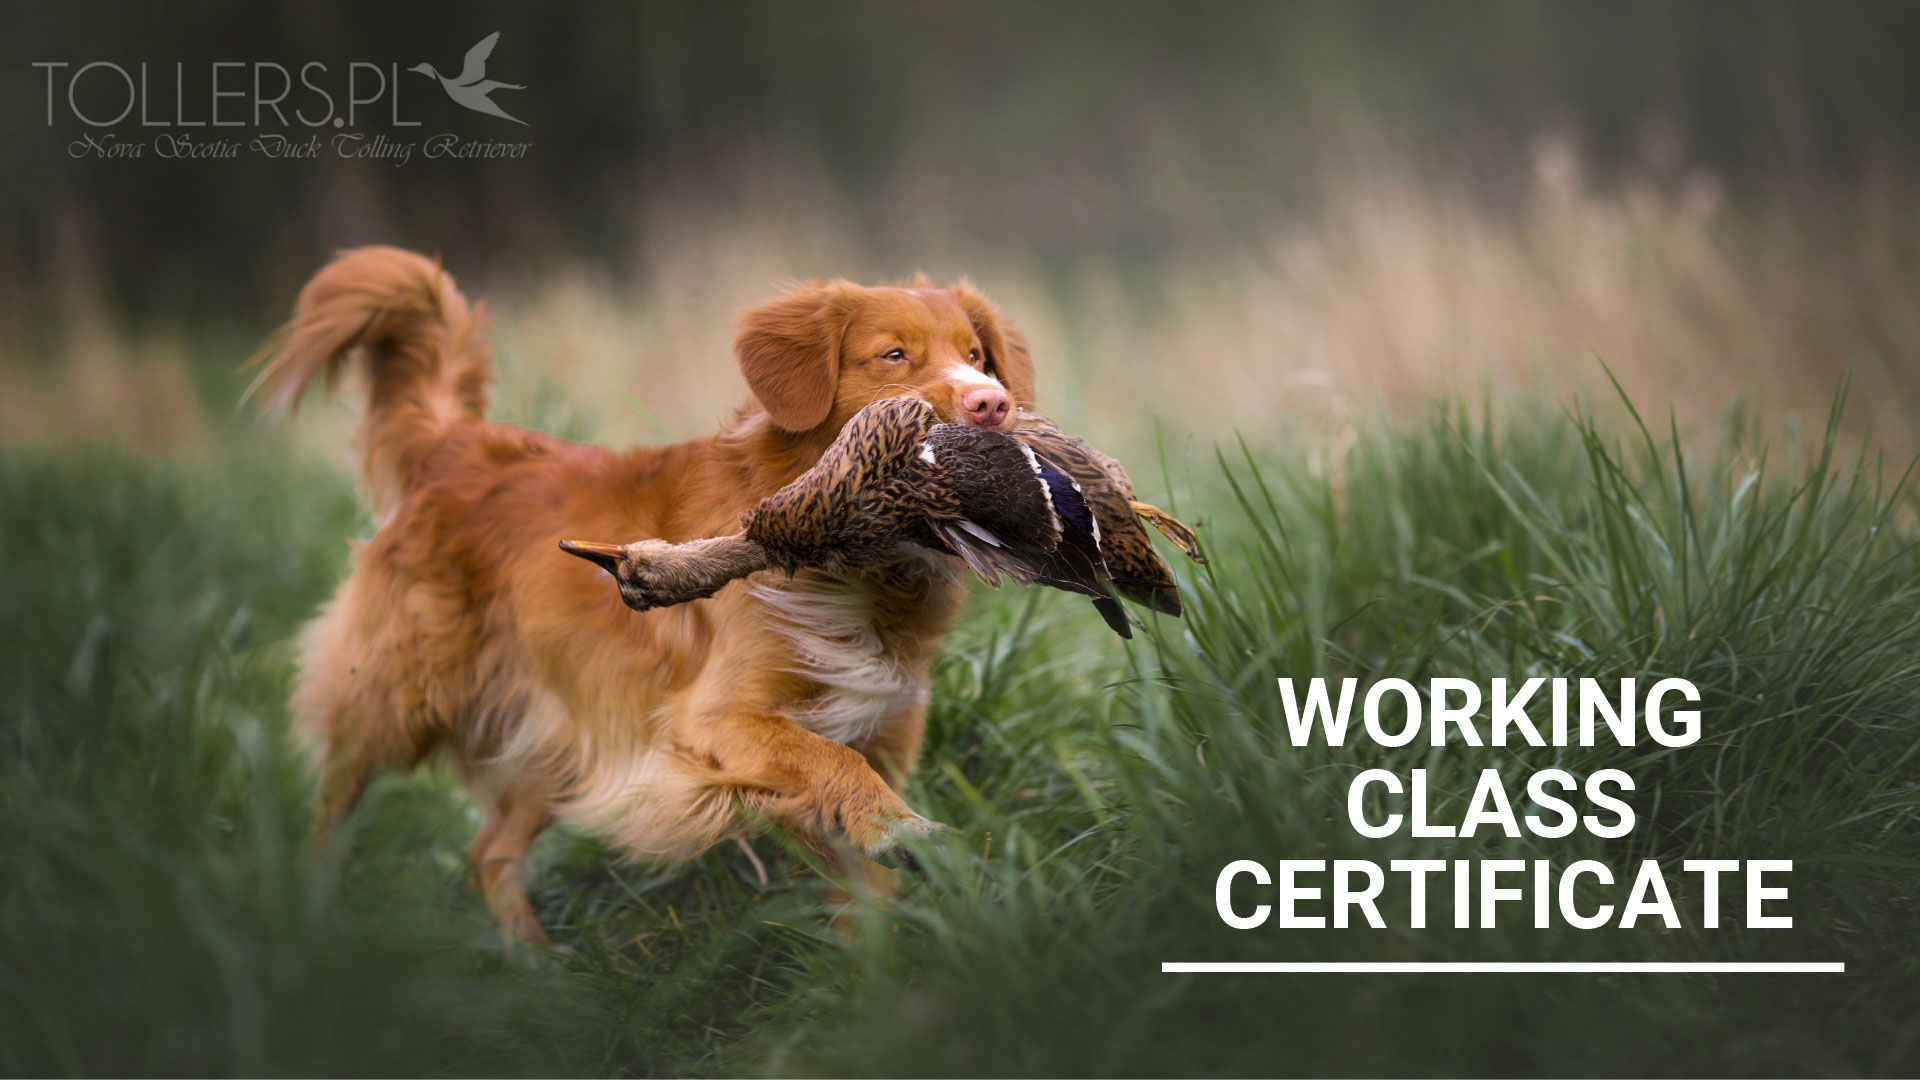 Toller with Working Class Certificate